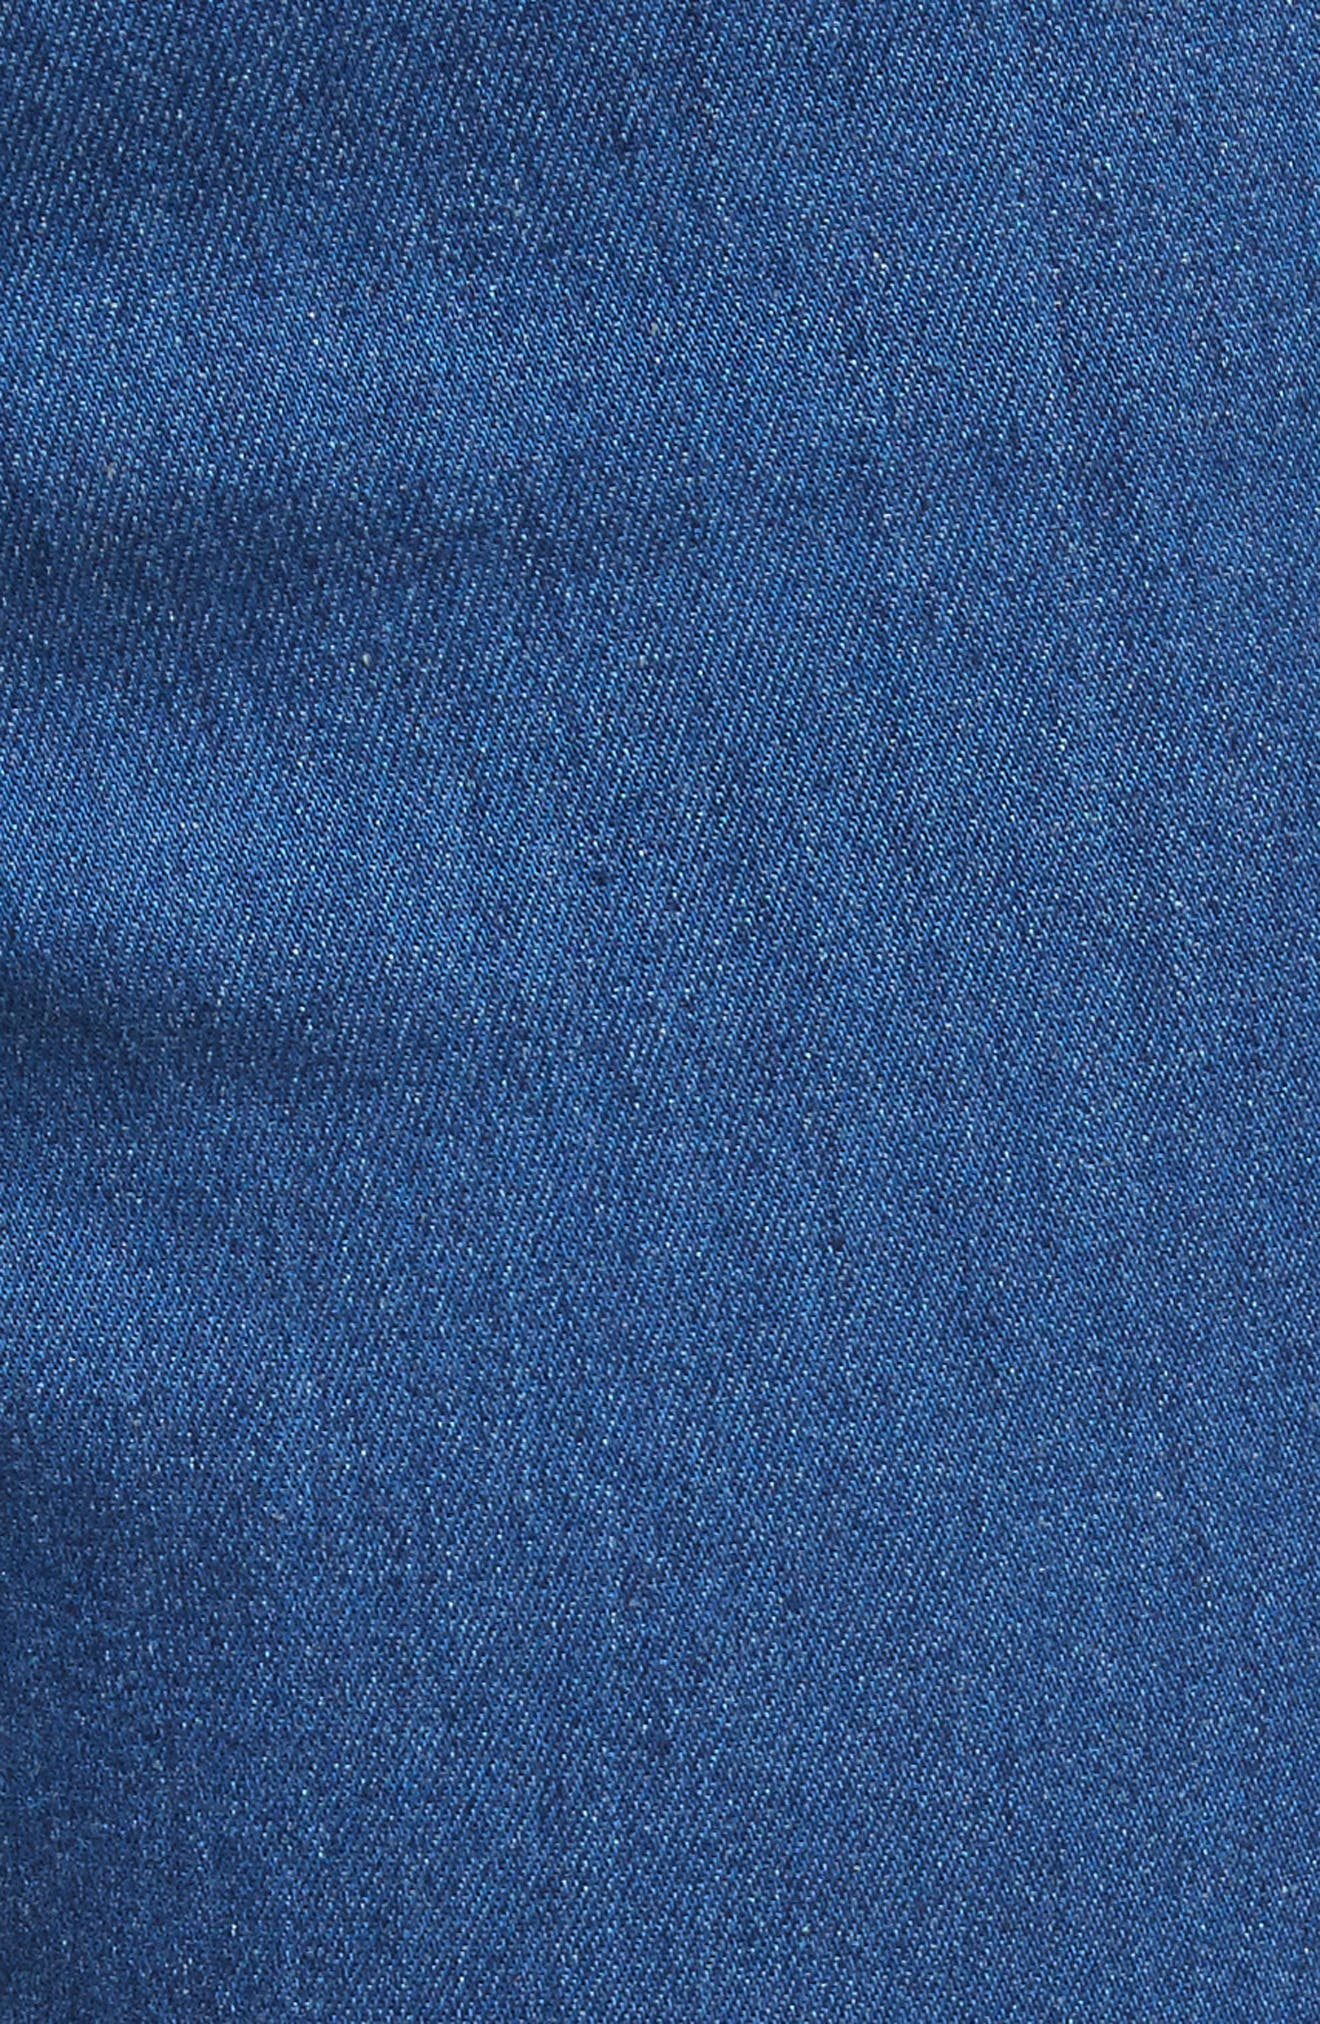 Kayleigh Bell Jeans,                             Alternate thumbnail 5, color,